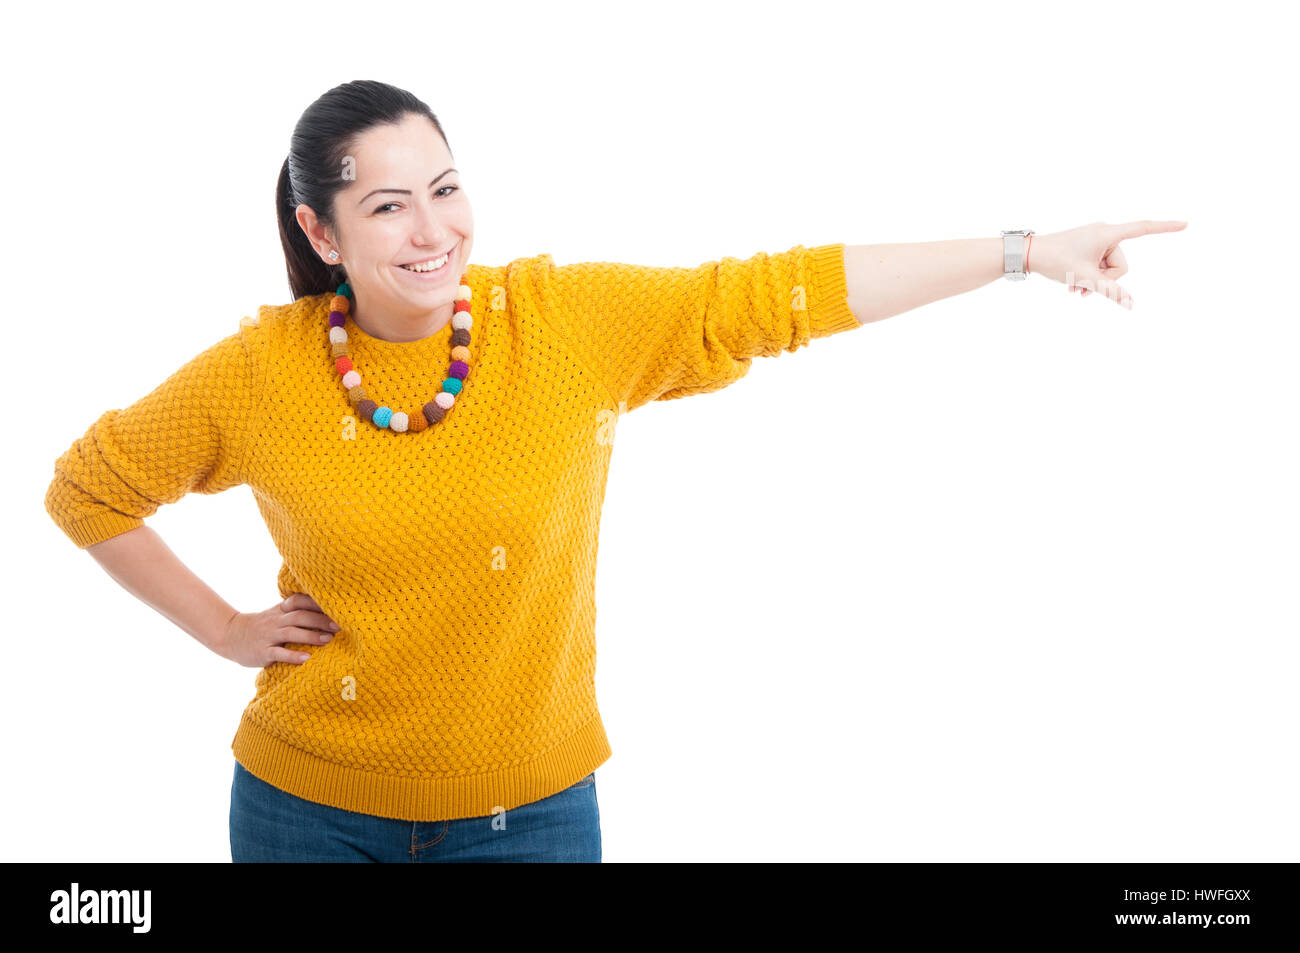 Happy female pointing or indicate something on the left side isolated on white - Stock Image